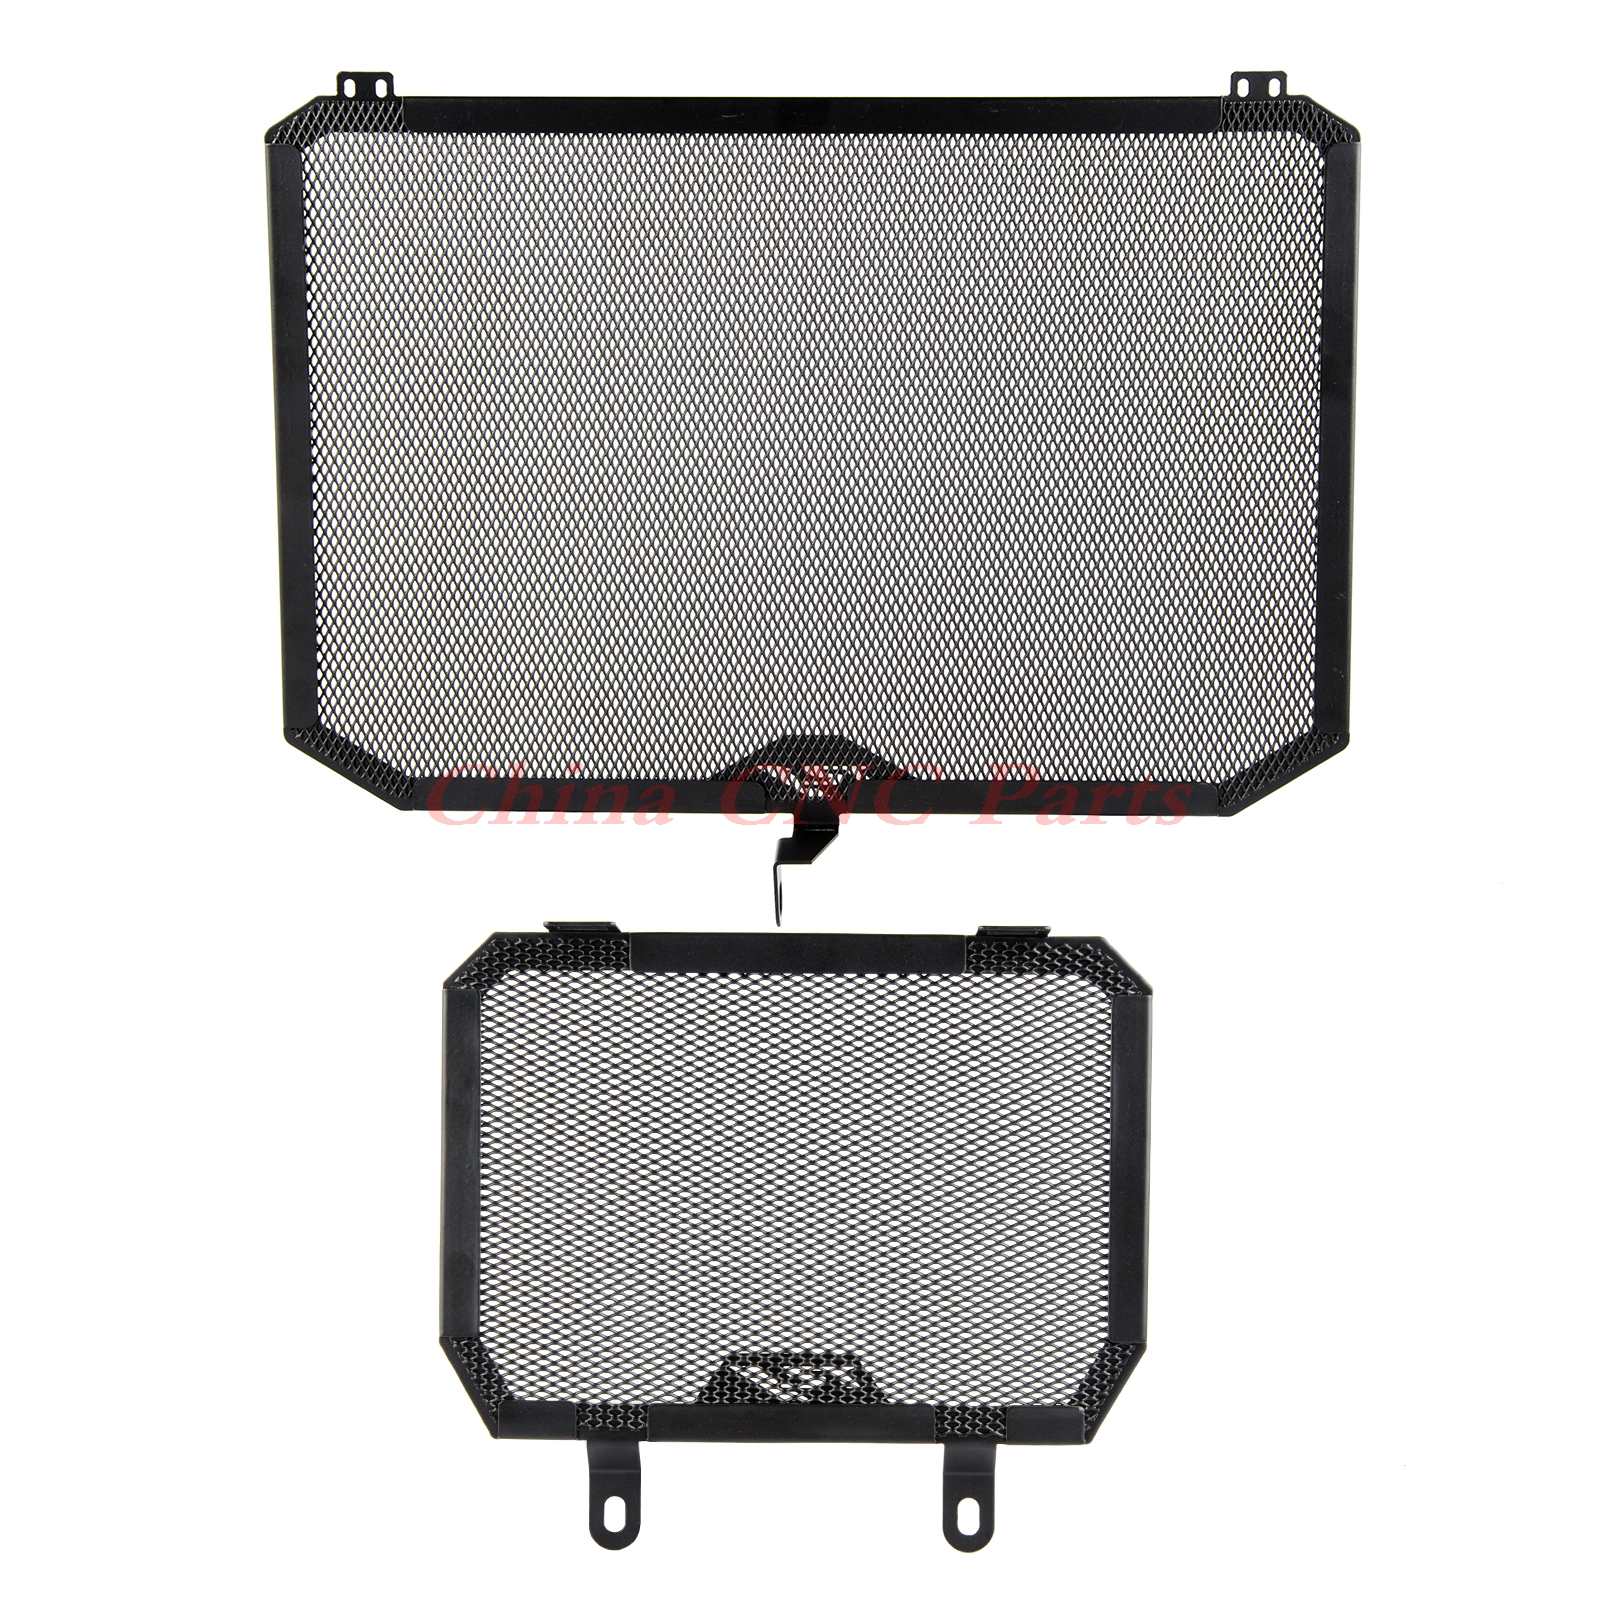 NICECNC Motorcycle Grille Radiator Cover Oil Water Cooler For Yamaha YZF R1 R1M 2015-2017 R1S 2016 2017<br>